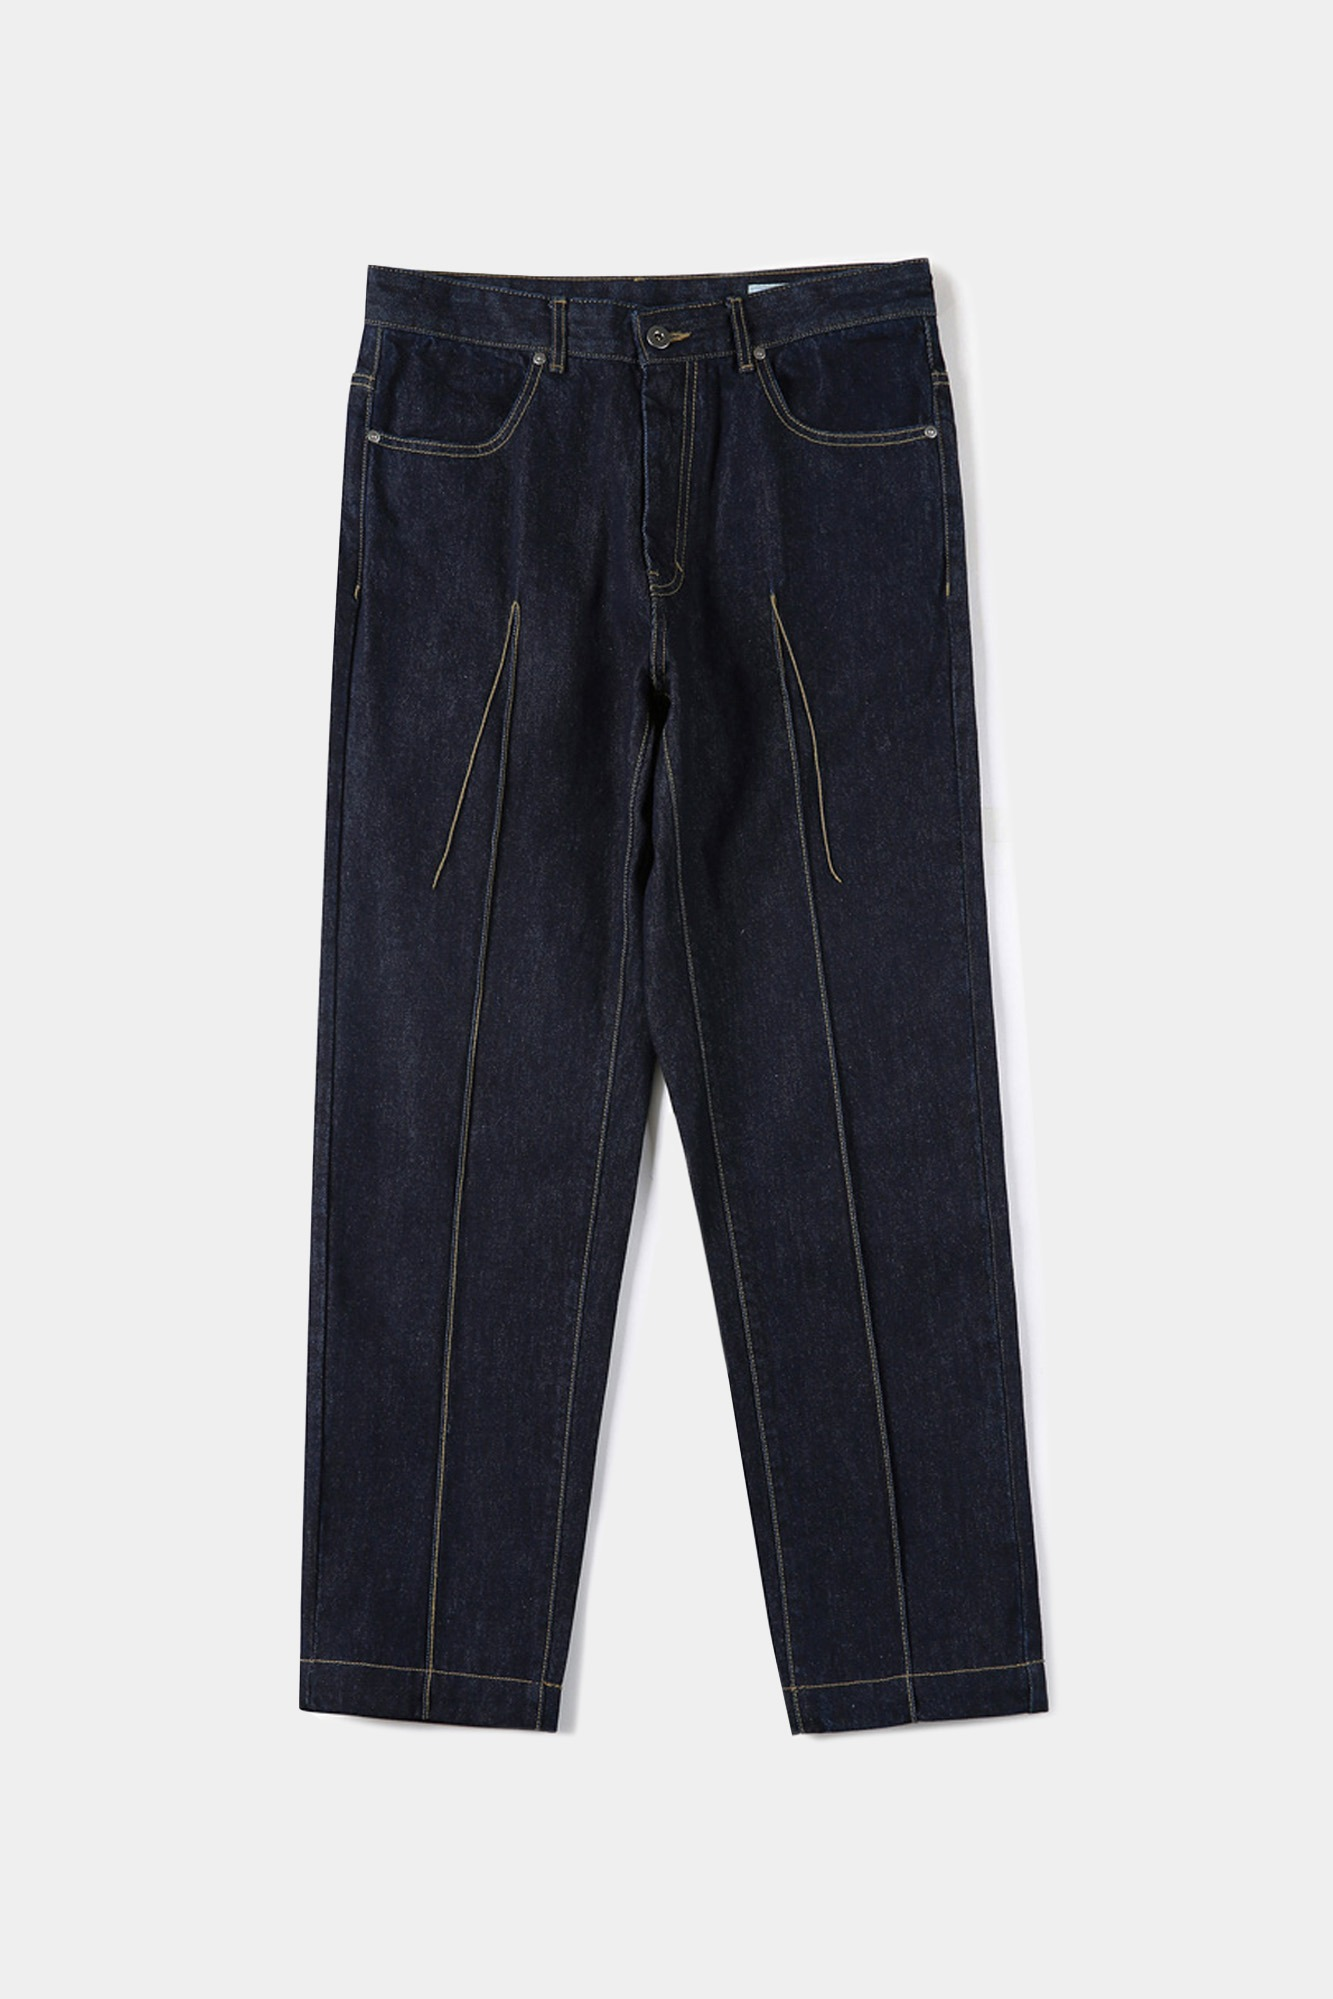 "SHIRTER Tapered Original Denim Pants ""Indigo"""